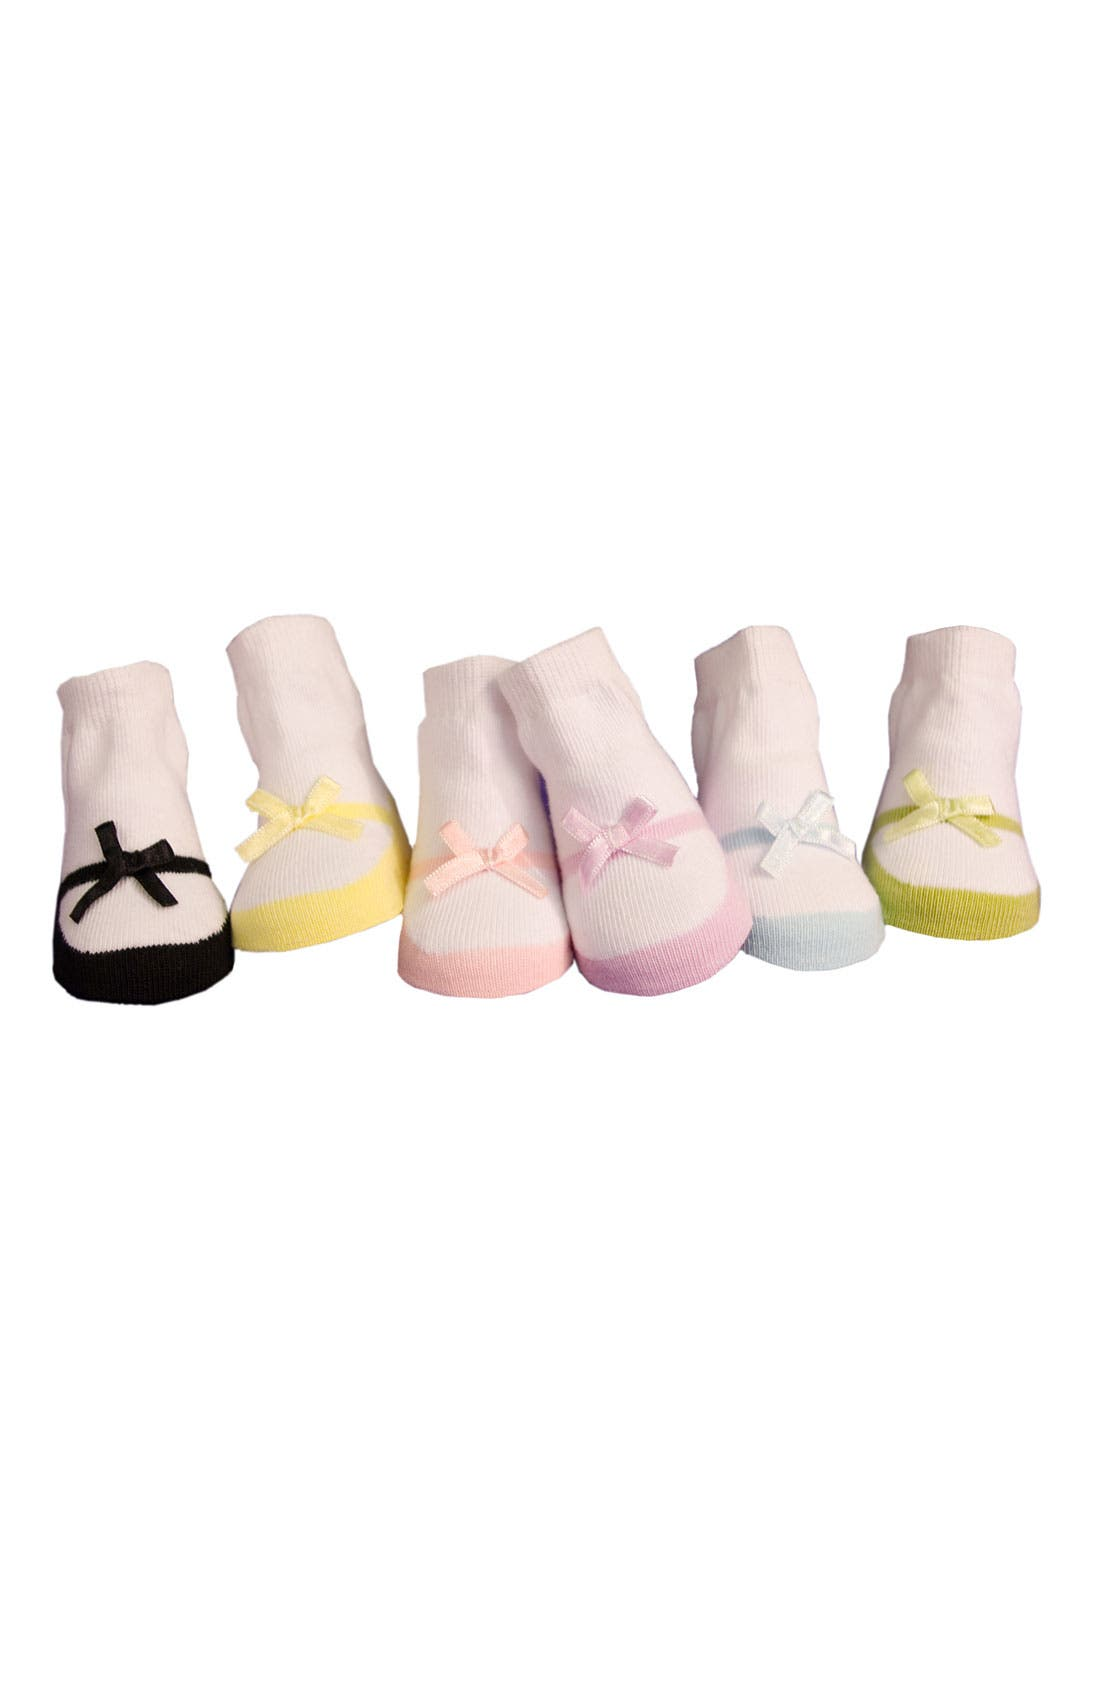 Main Image - Trumpette Socks Gift Set (Baby Girls)